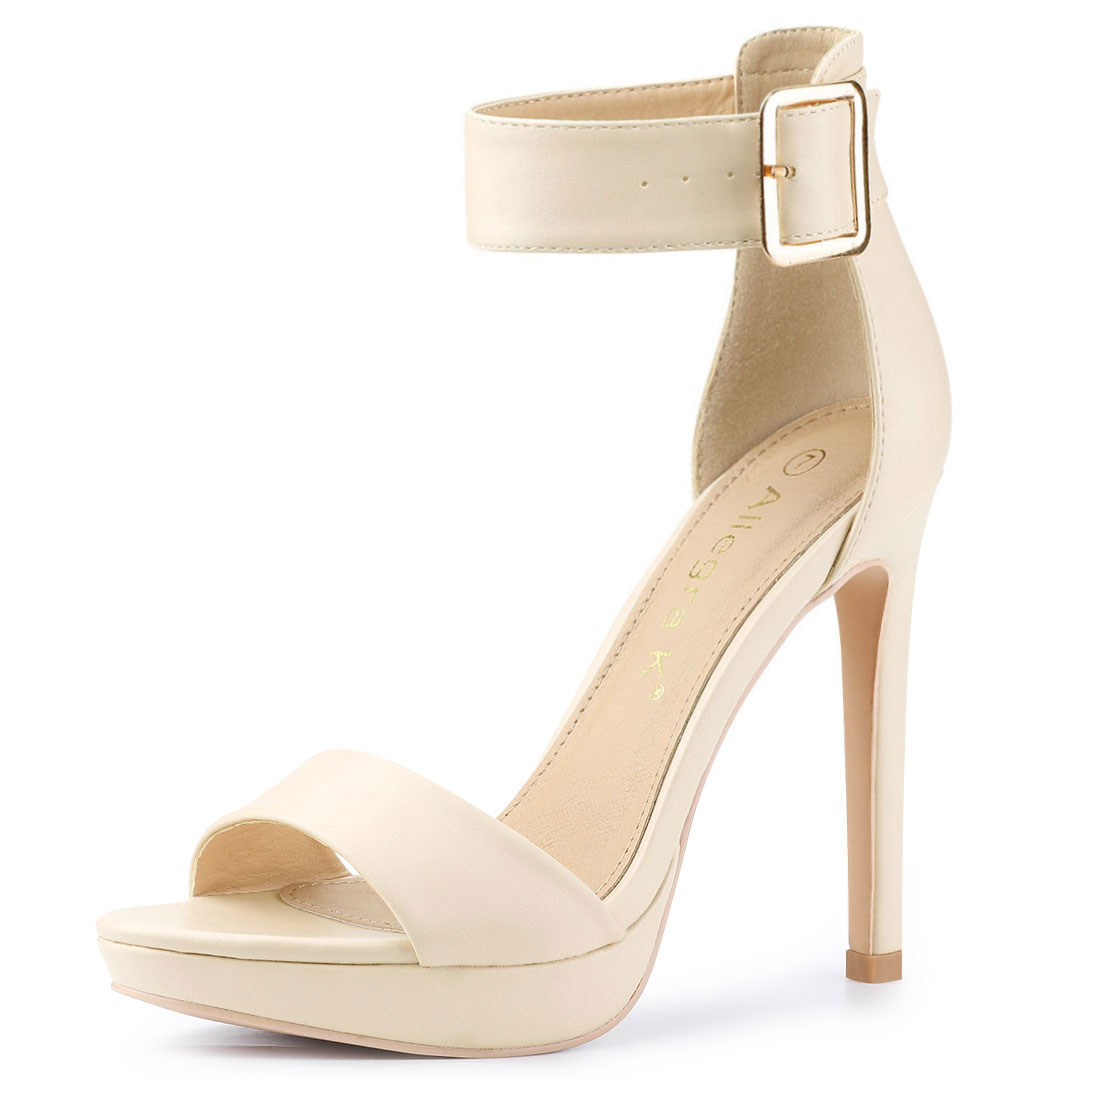 Allegra K Women's Open Toe Platform Strap Stiletto Heel Sandals Beige US 9